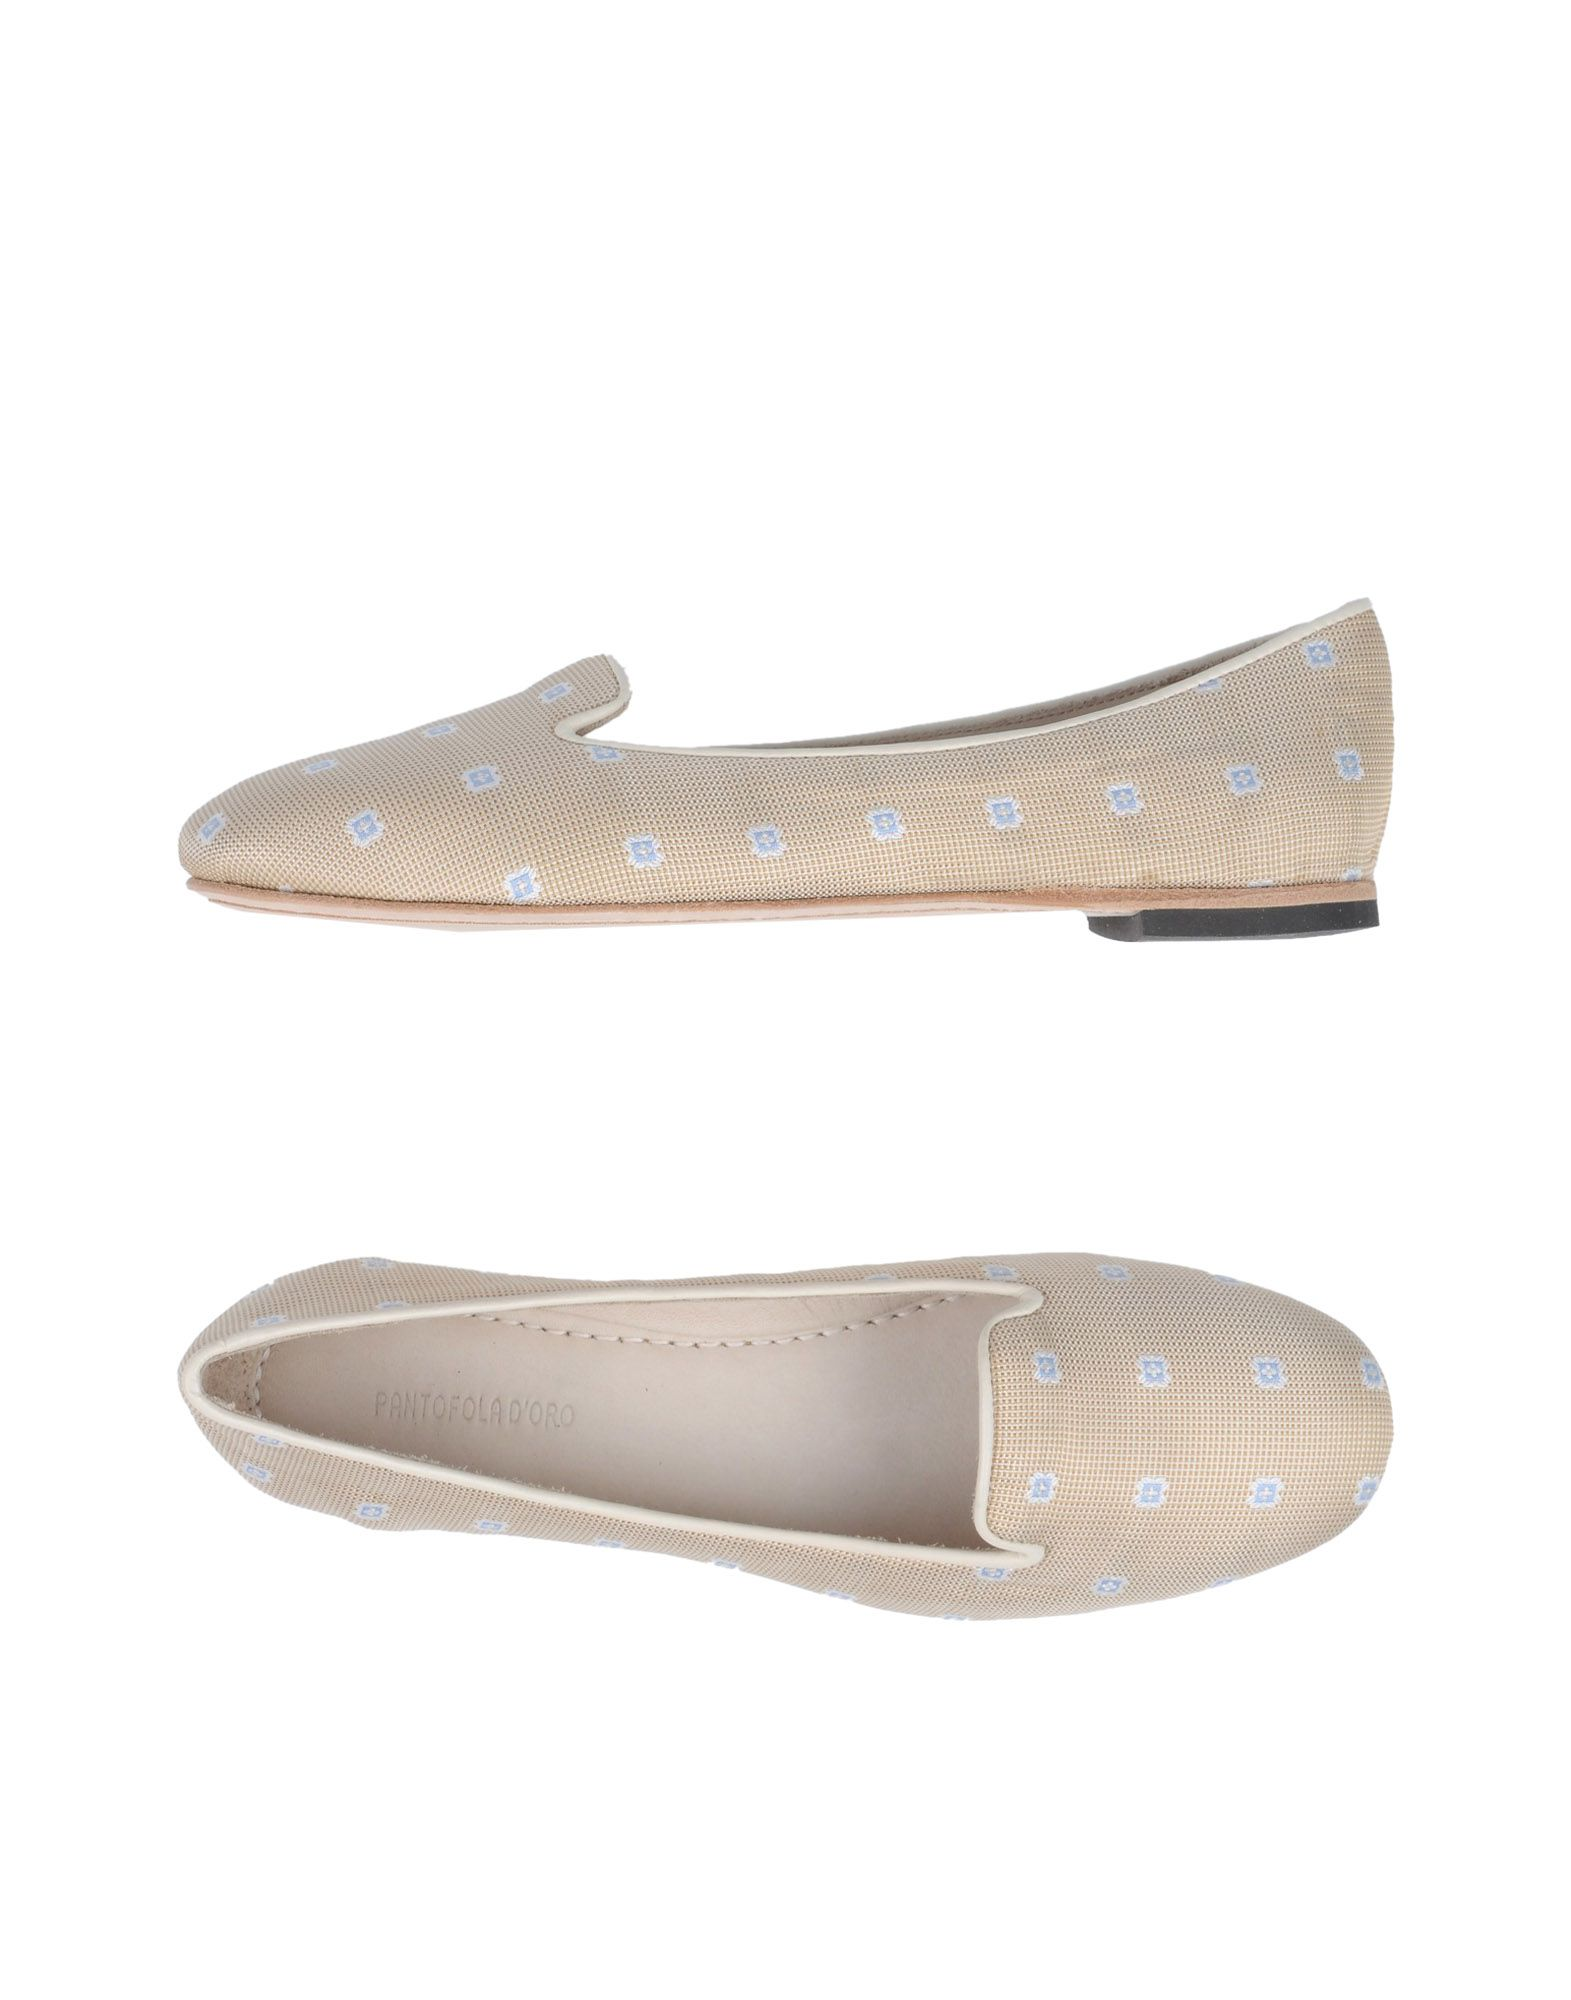 Pantofola D'oro Loafers - Women Pantofola D'oro Loafers online on 11353904DB  United Kingdom - 11353904DB on 4d0ec2